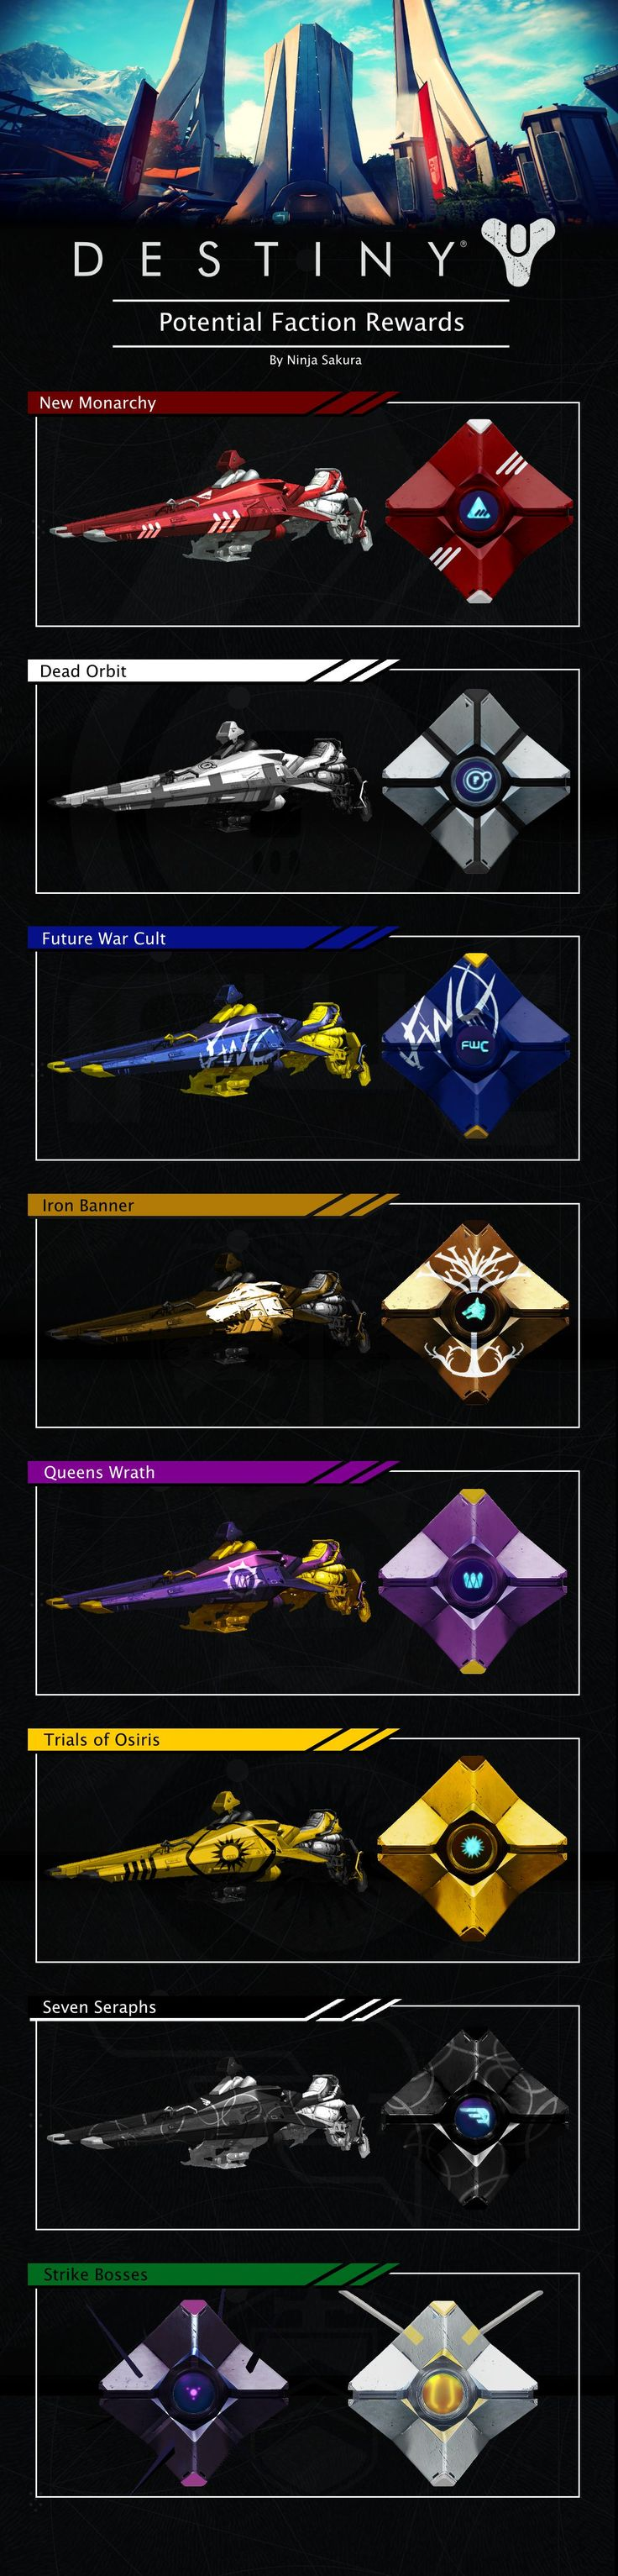 Destiny's Faction Potentials This will never happen. Well the iron banner ghost she'll is in the game but it is green and gray.